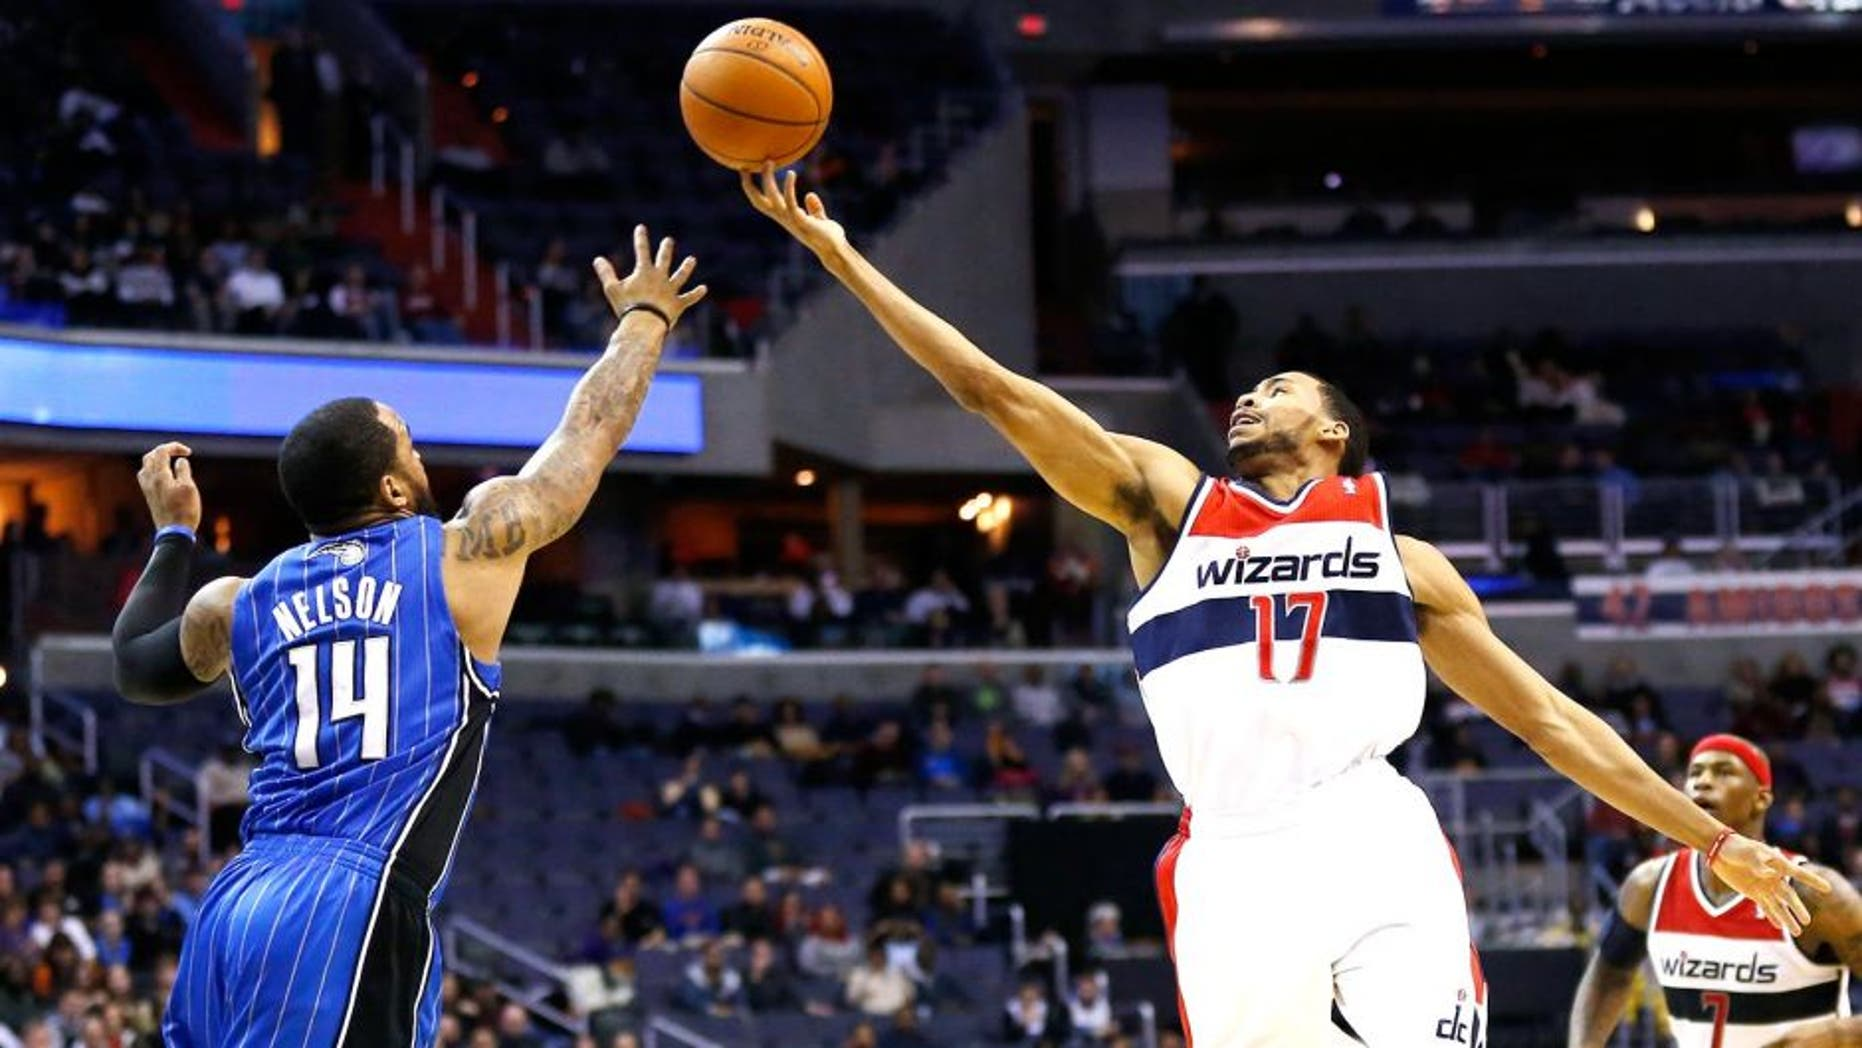 Feb 25, 2014; Washington, DC, USA; Washington Wizards shooting guard Garrett Temple (17) and Orlando Magic point guard Jameer Nelson (14) battle for the ball in the second quarter at Verizon Center. Mandatory Credit: Geoff Burke-USA TODAY Sports